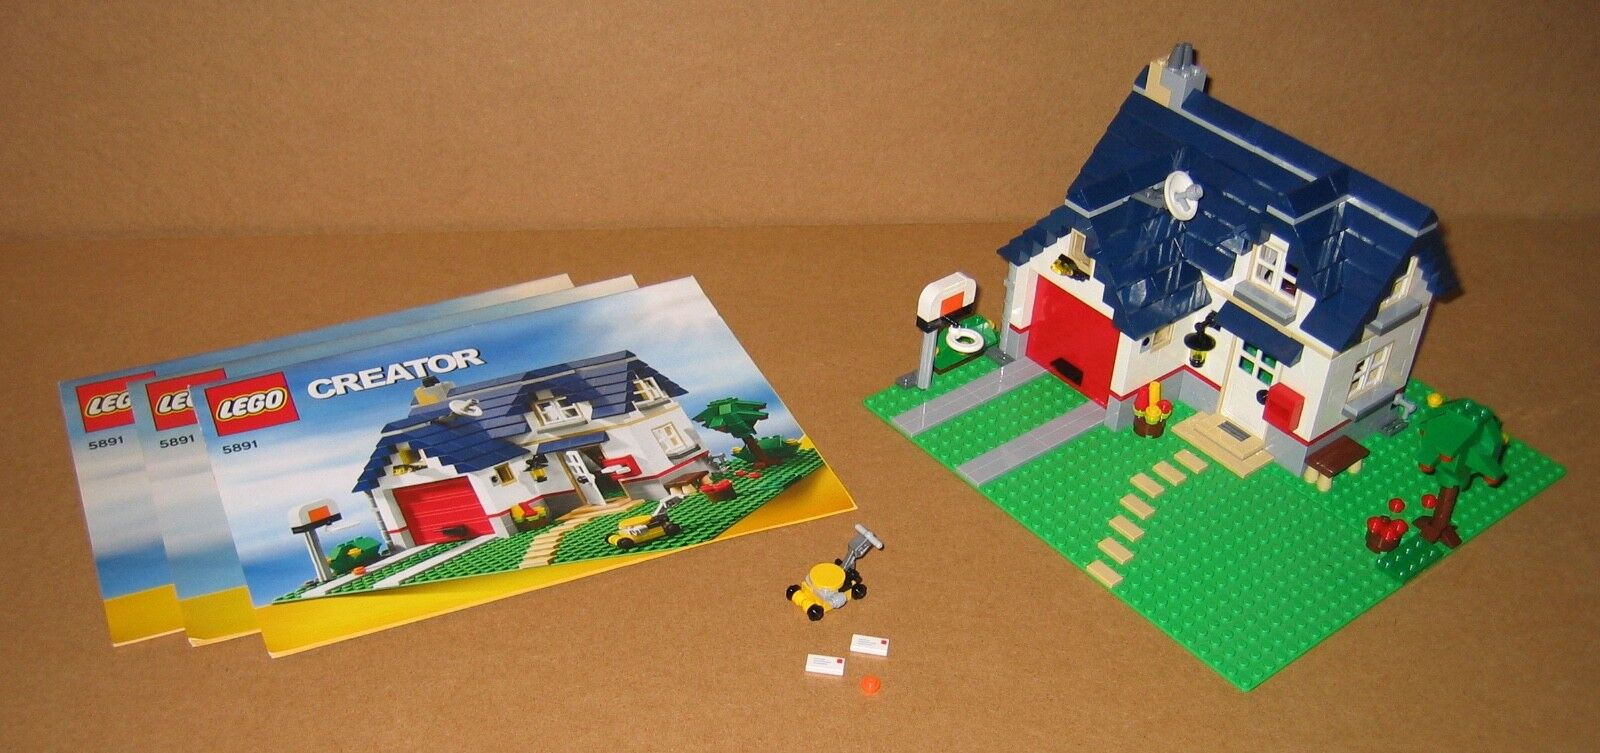 5891 LEGO 3-in-1 Creator Apple Tree House 100% Complete w Manuals EX COND 2010